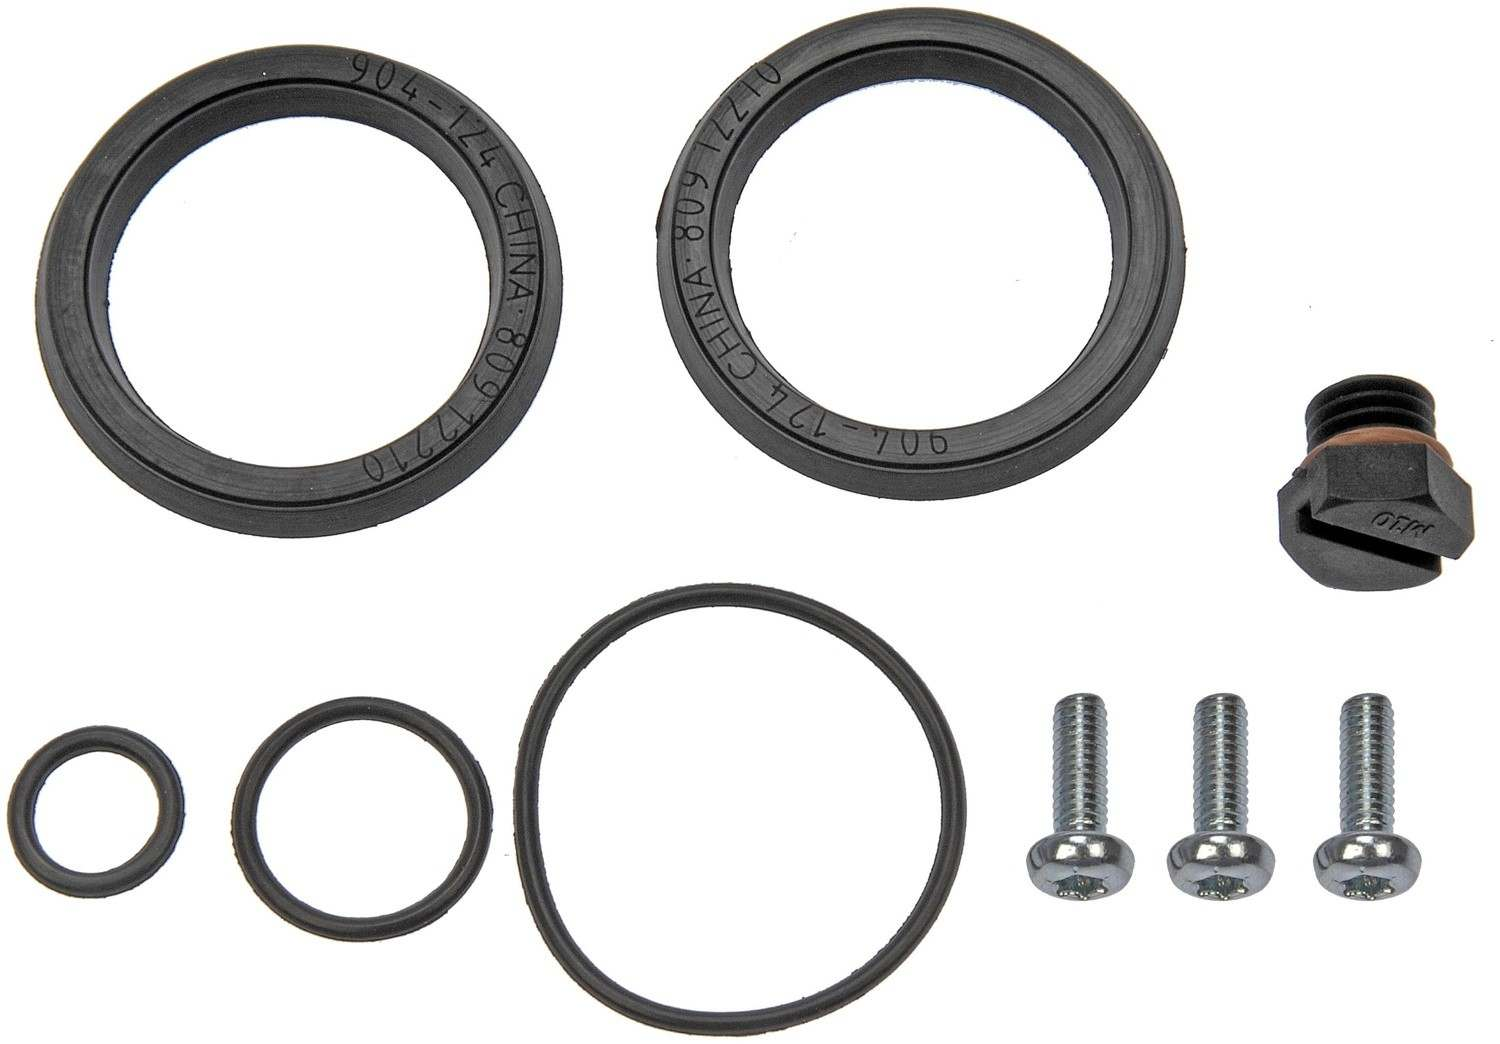 DORMAN OE SOLUTIONS - Fuel Filter Primer Housing Seal Kit - DRE 904-124